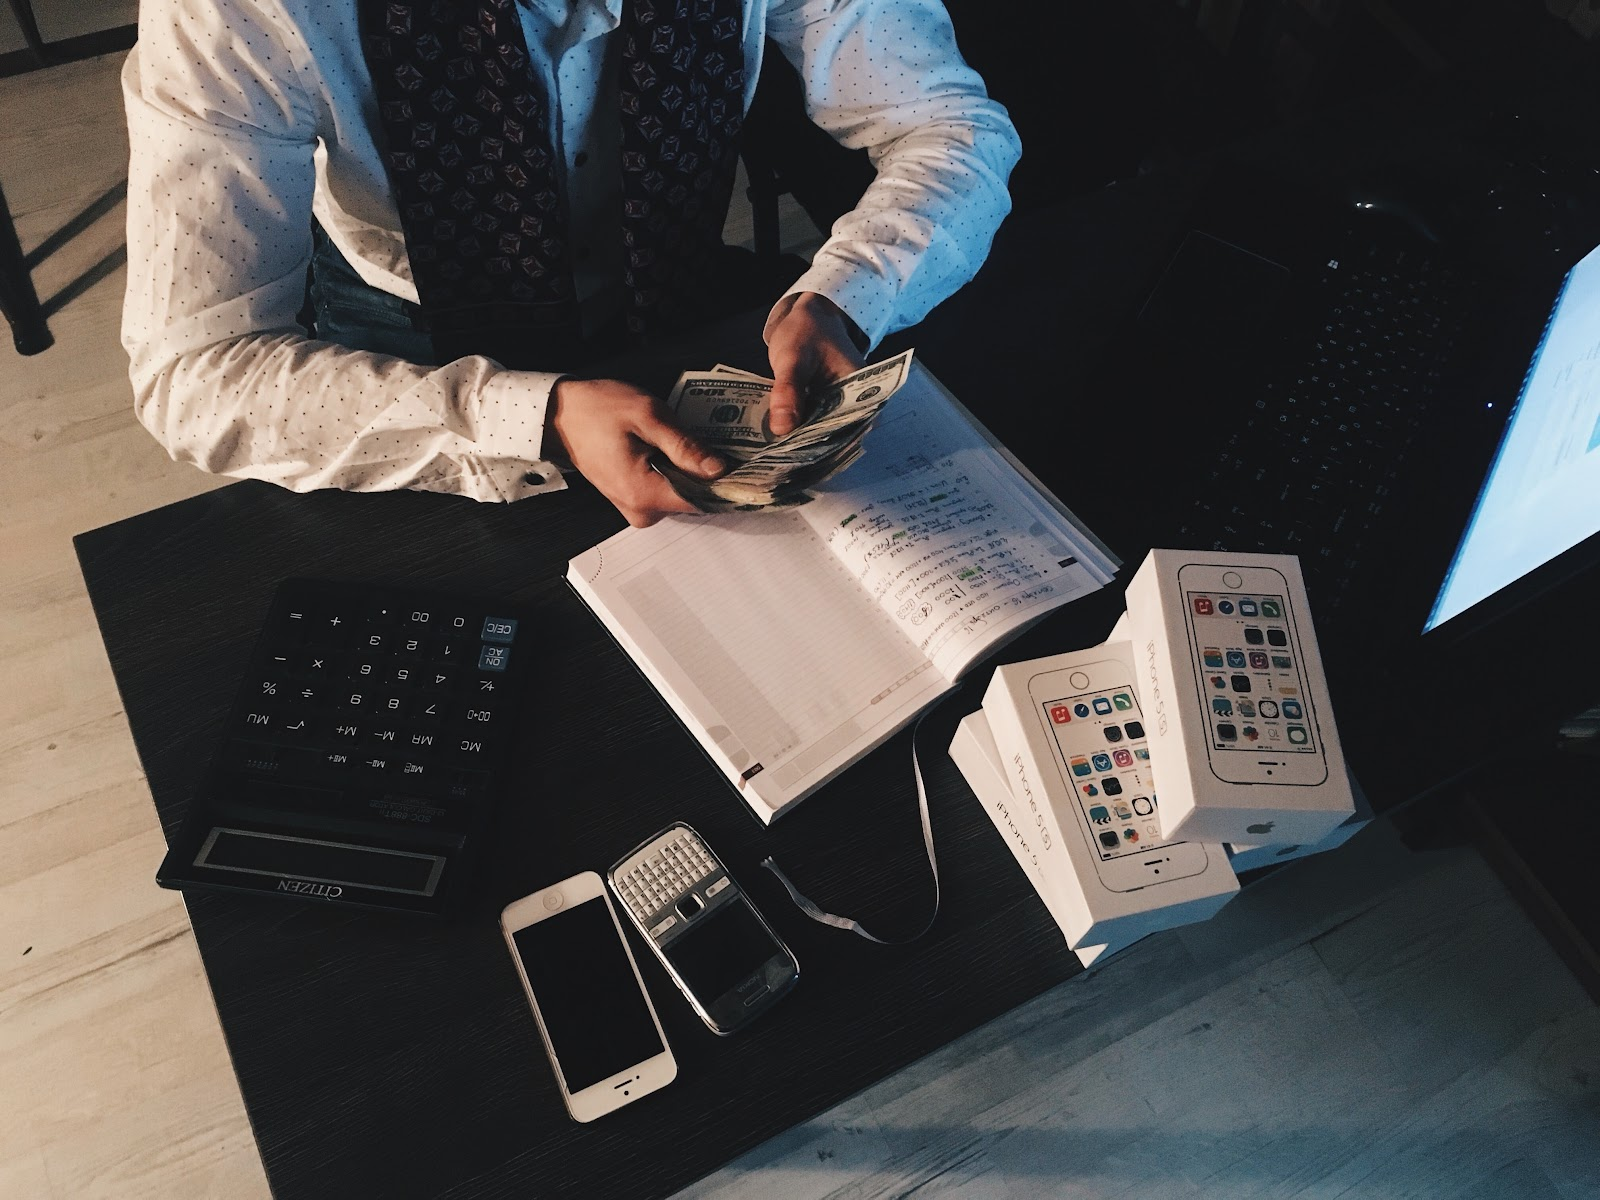 How to Calculate Total Revenue - See the Formula and Details